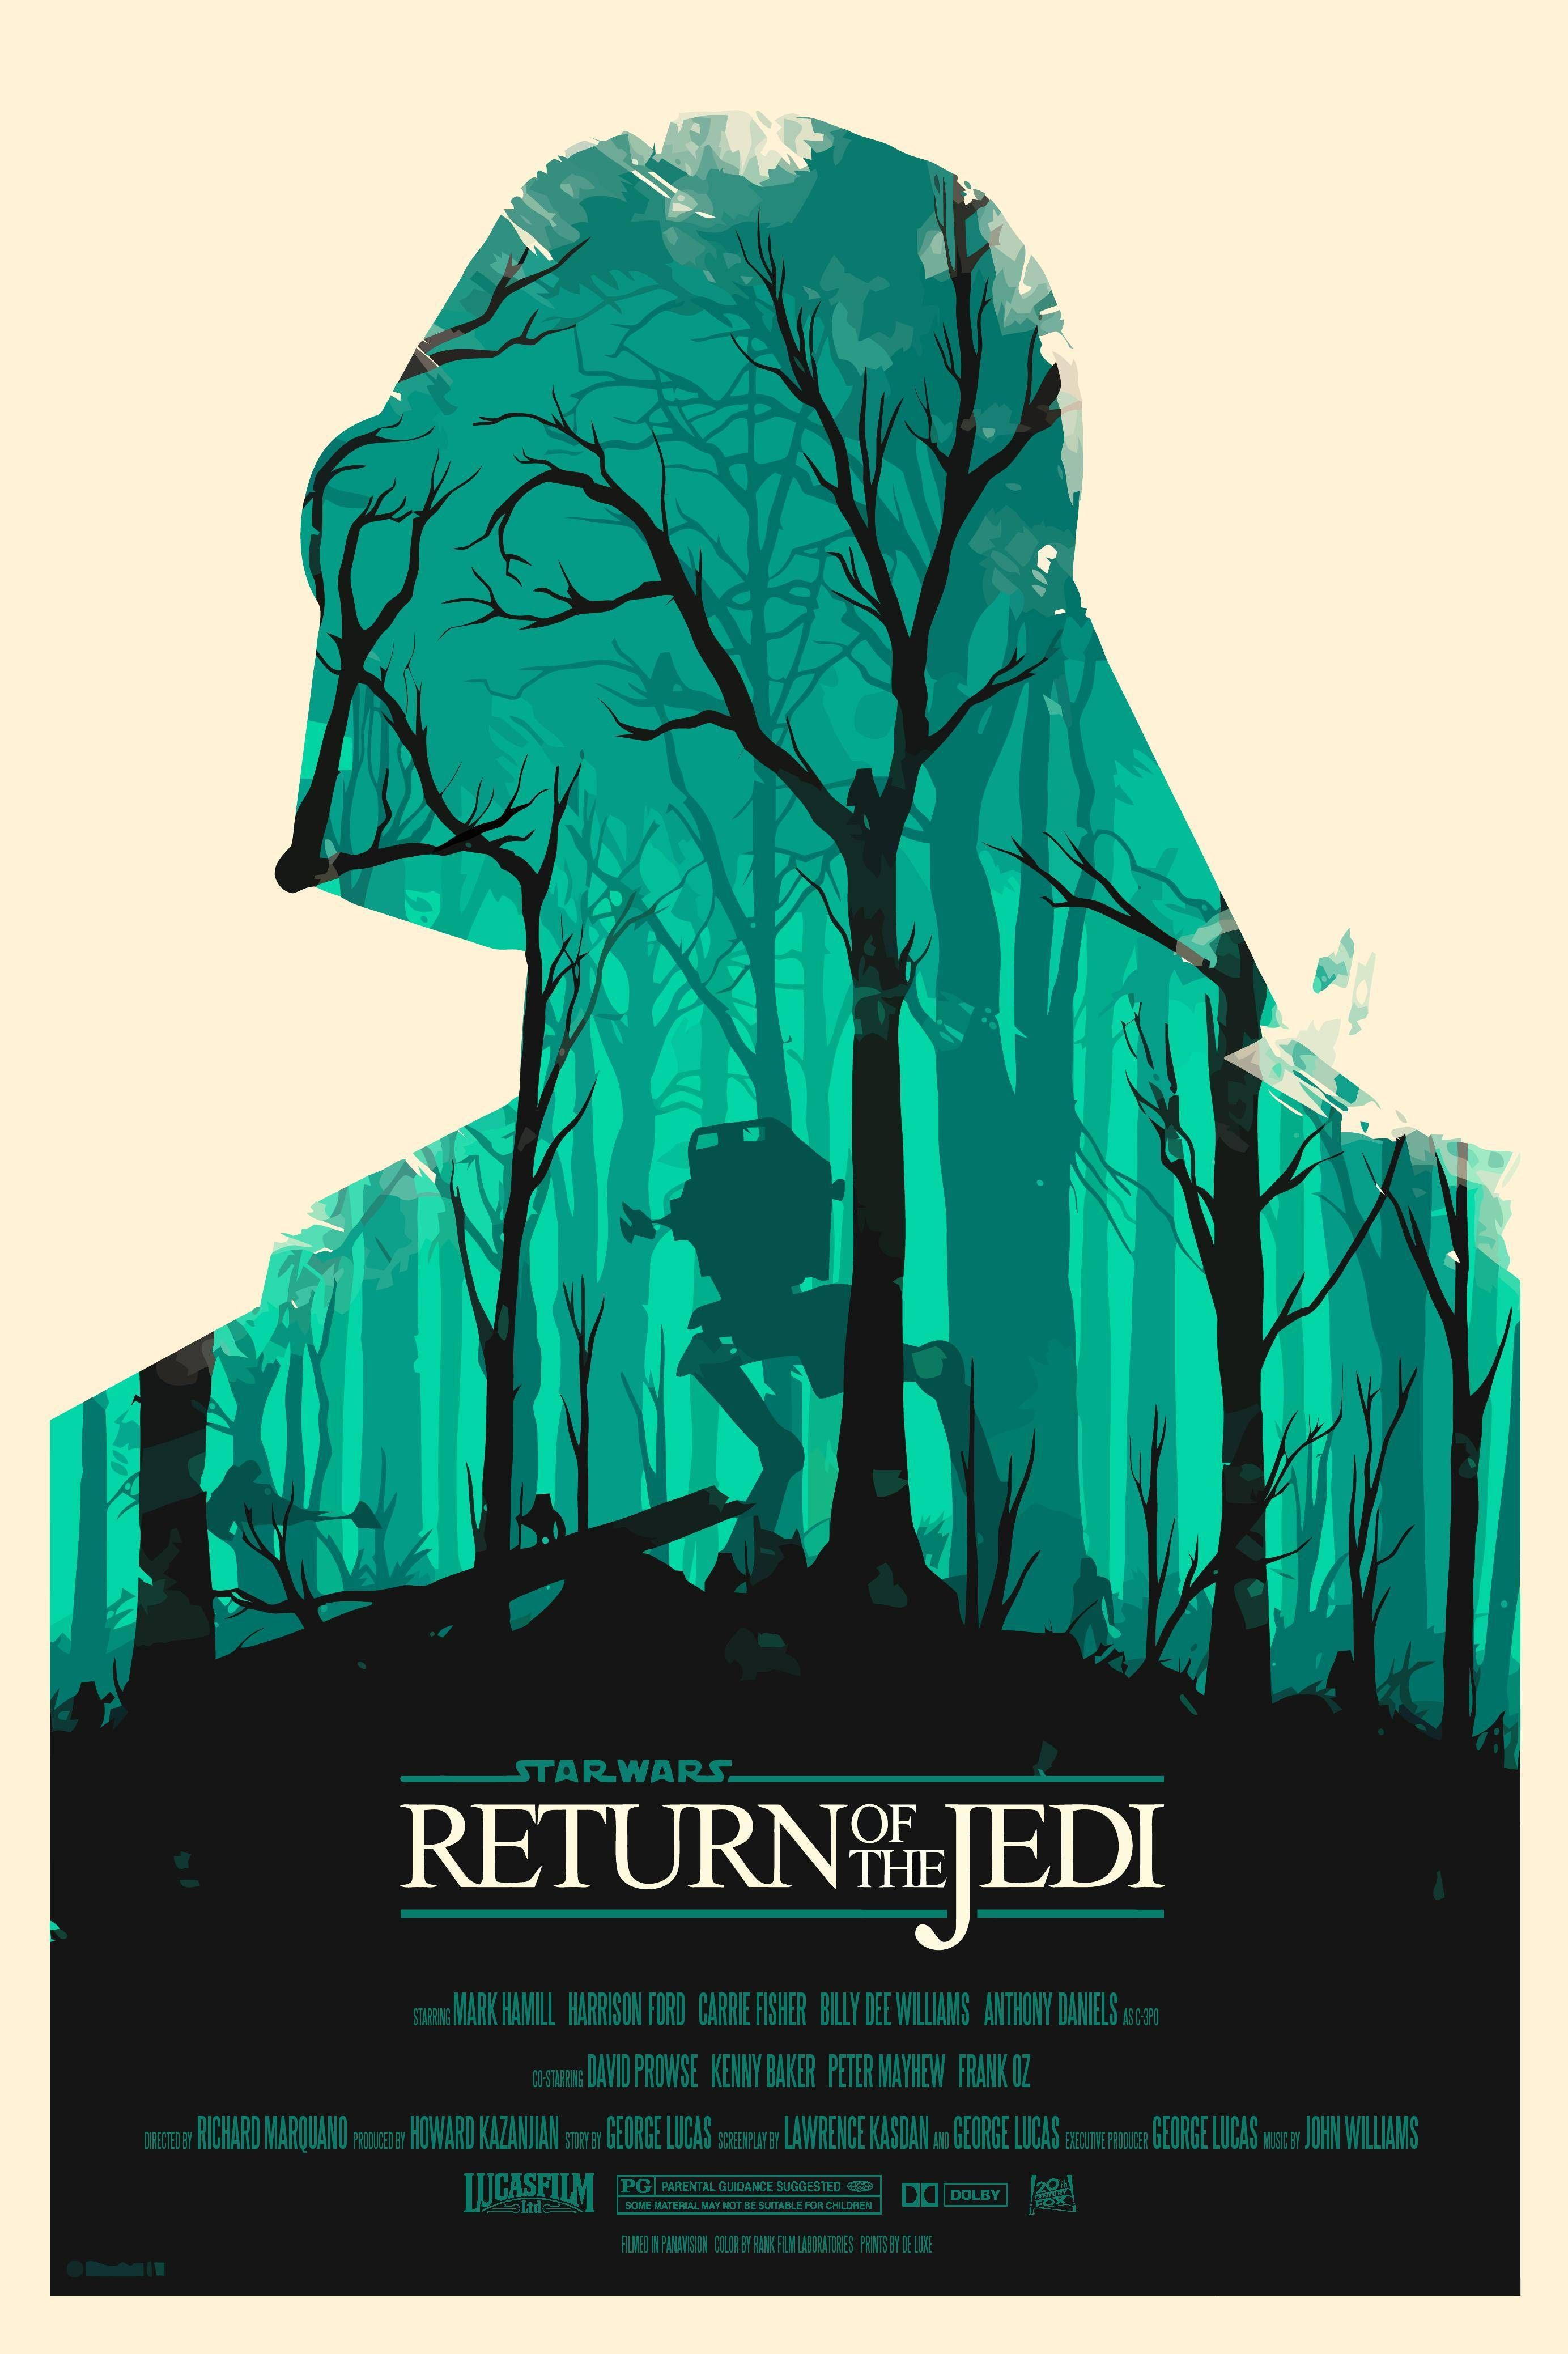 Star Wars Poster Pin By Leo Berghuis On Star Wars Posters Pinterest